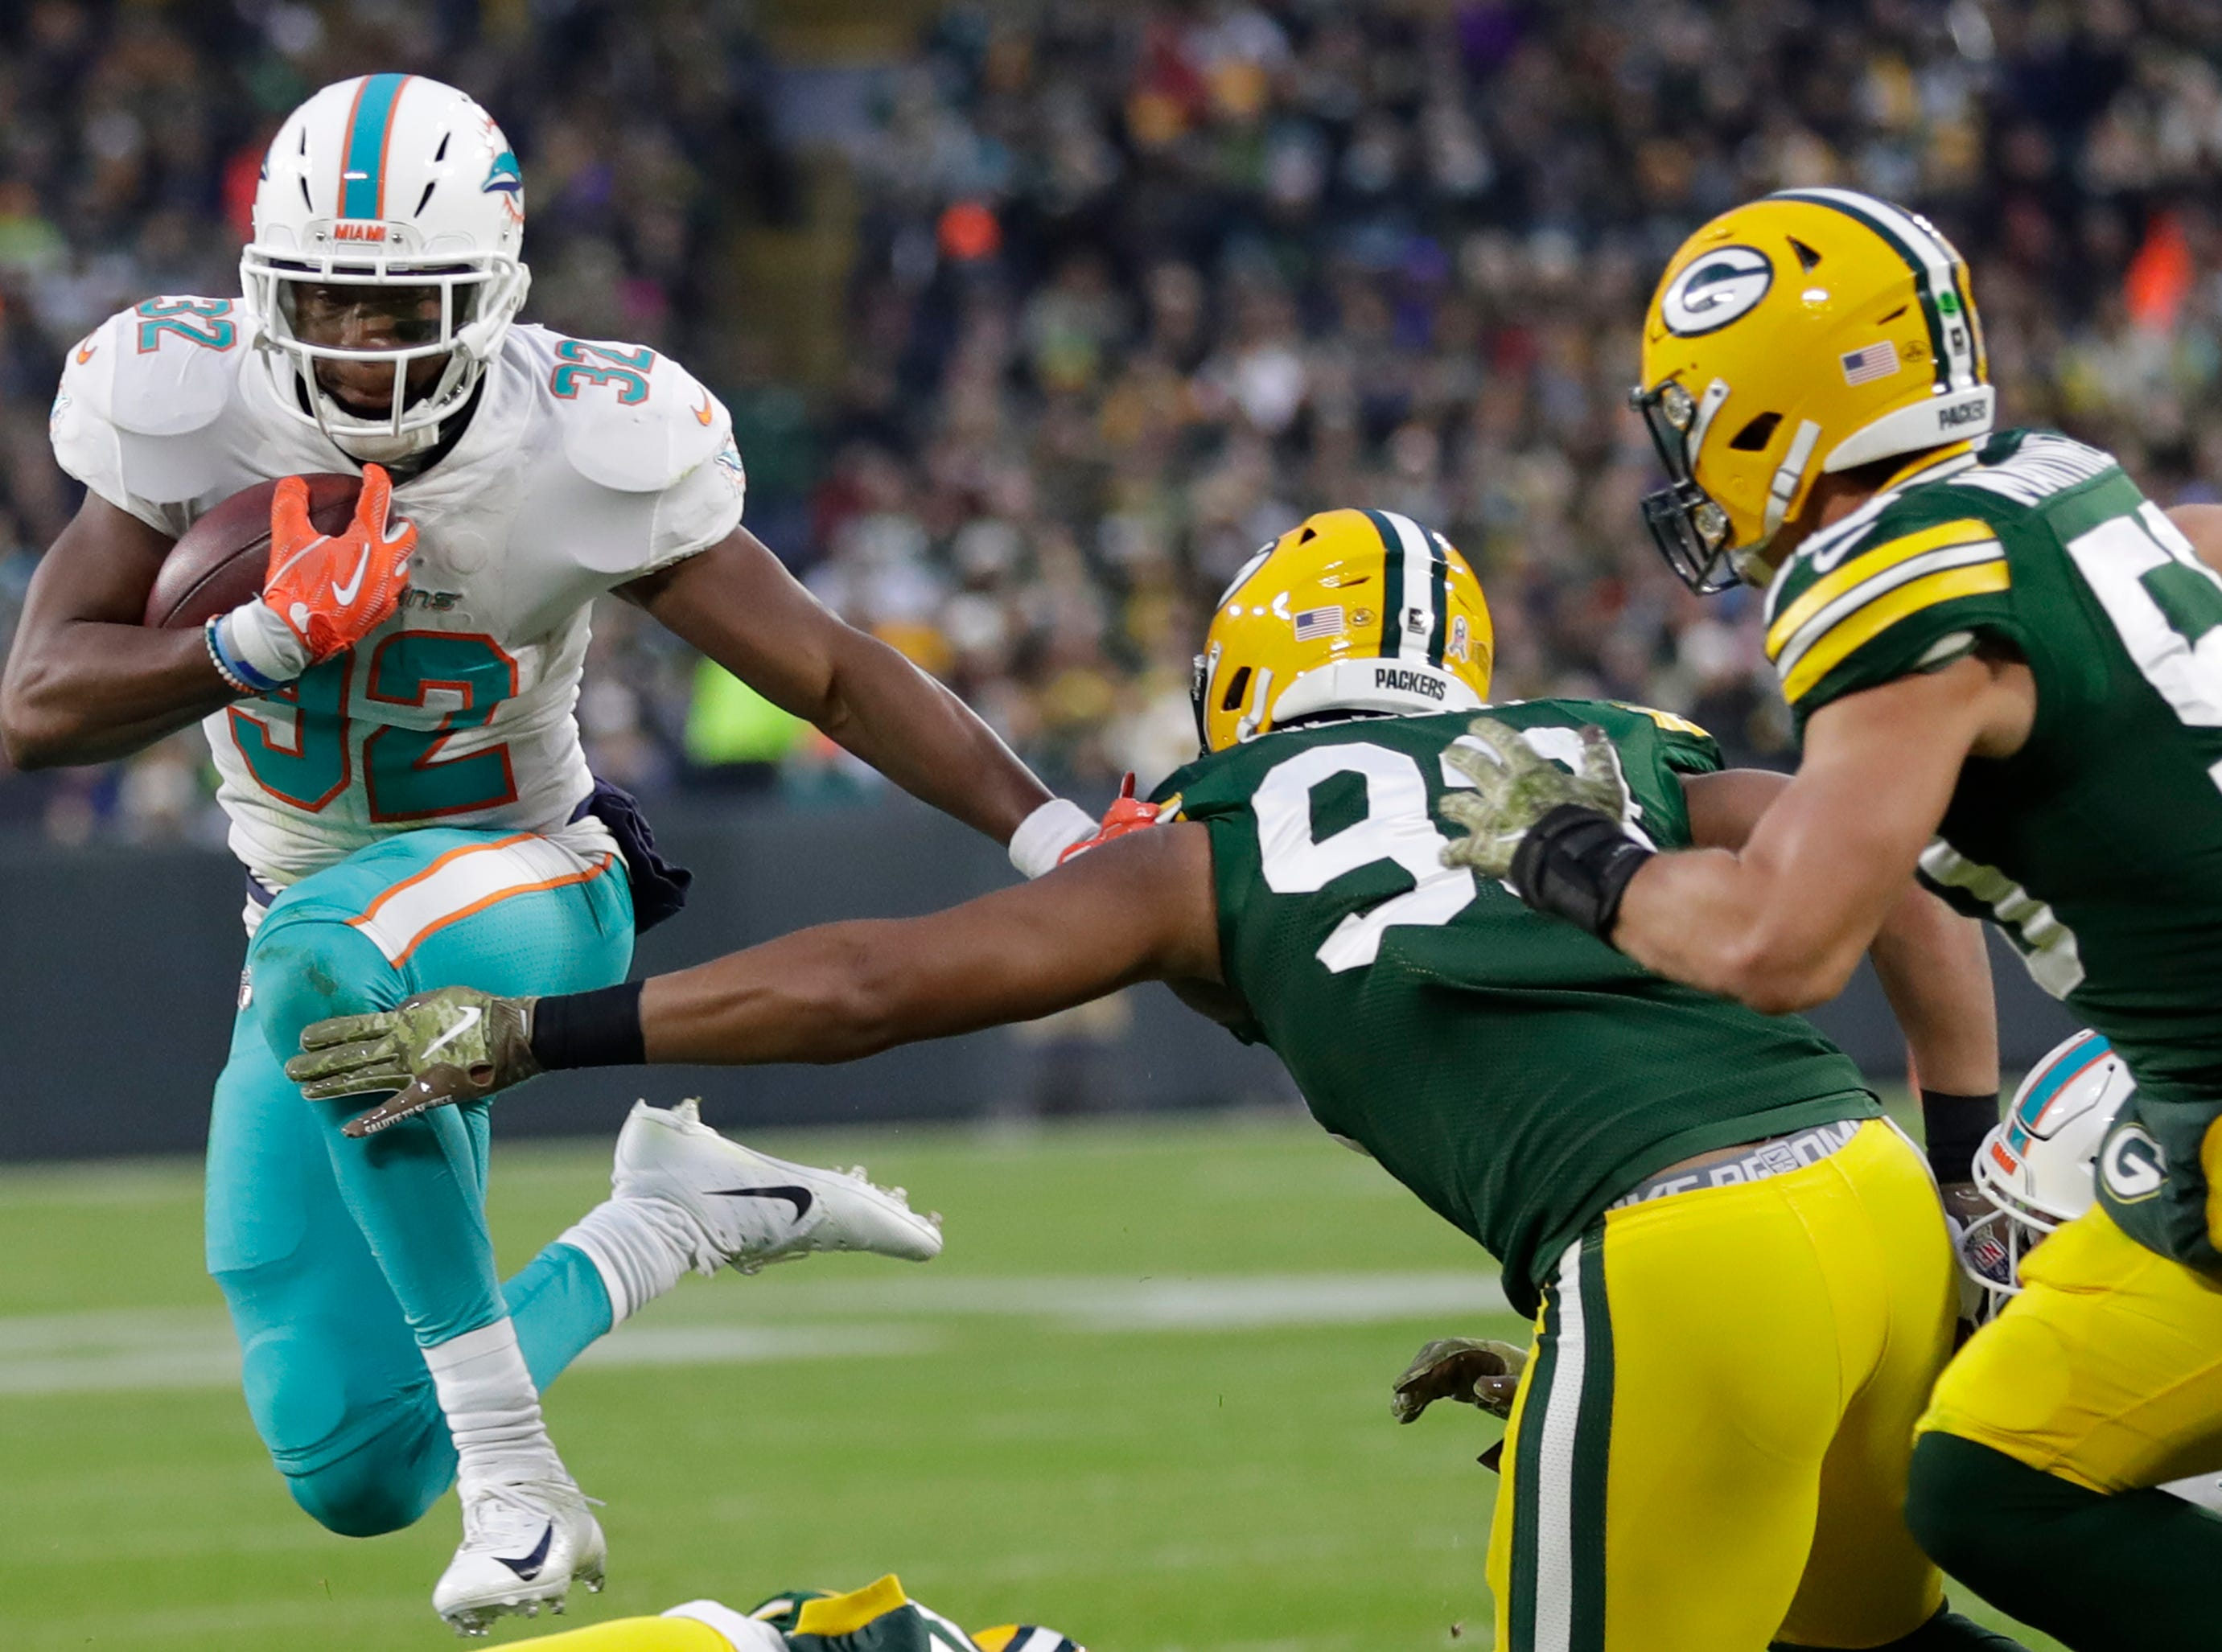 Miami Dolphins running back Kenyan Drake (32) dives for yardage against Green Bay Packers linebacker Reggie Gilbert (93) in the first half Sunday, November 11, 2018, Lambeau Field in Green Bay, Wis. 